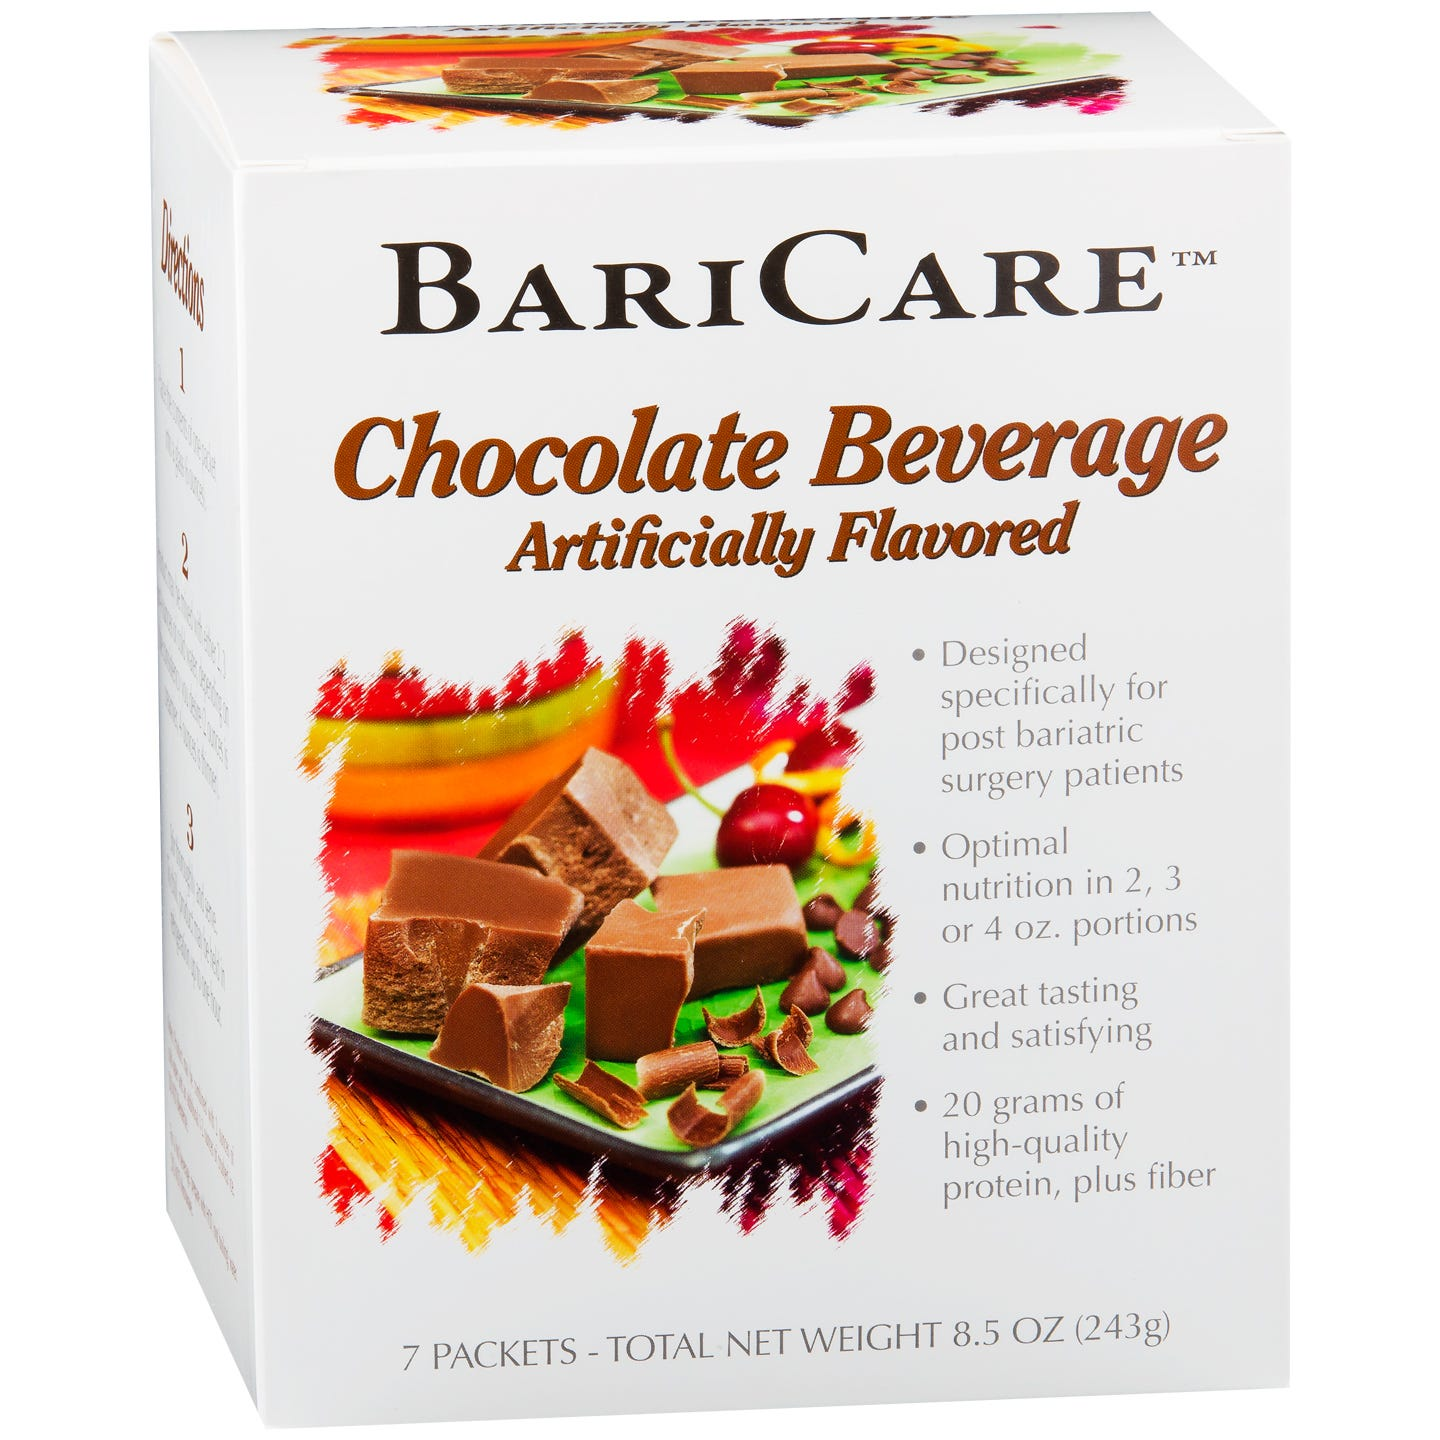 BariCare Post Bariatric Surgery Nutrition Supplements - Chocolate